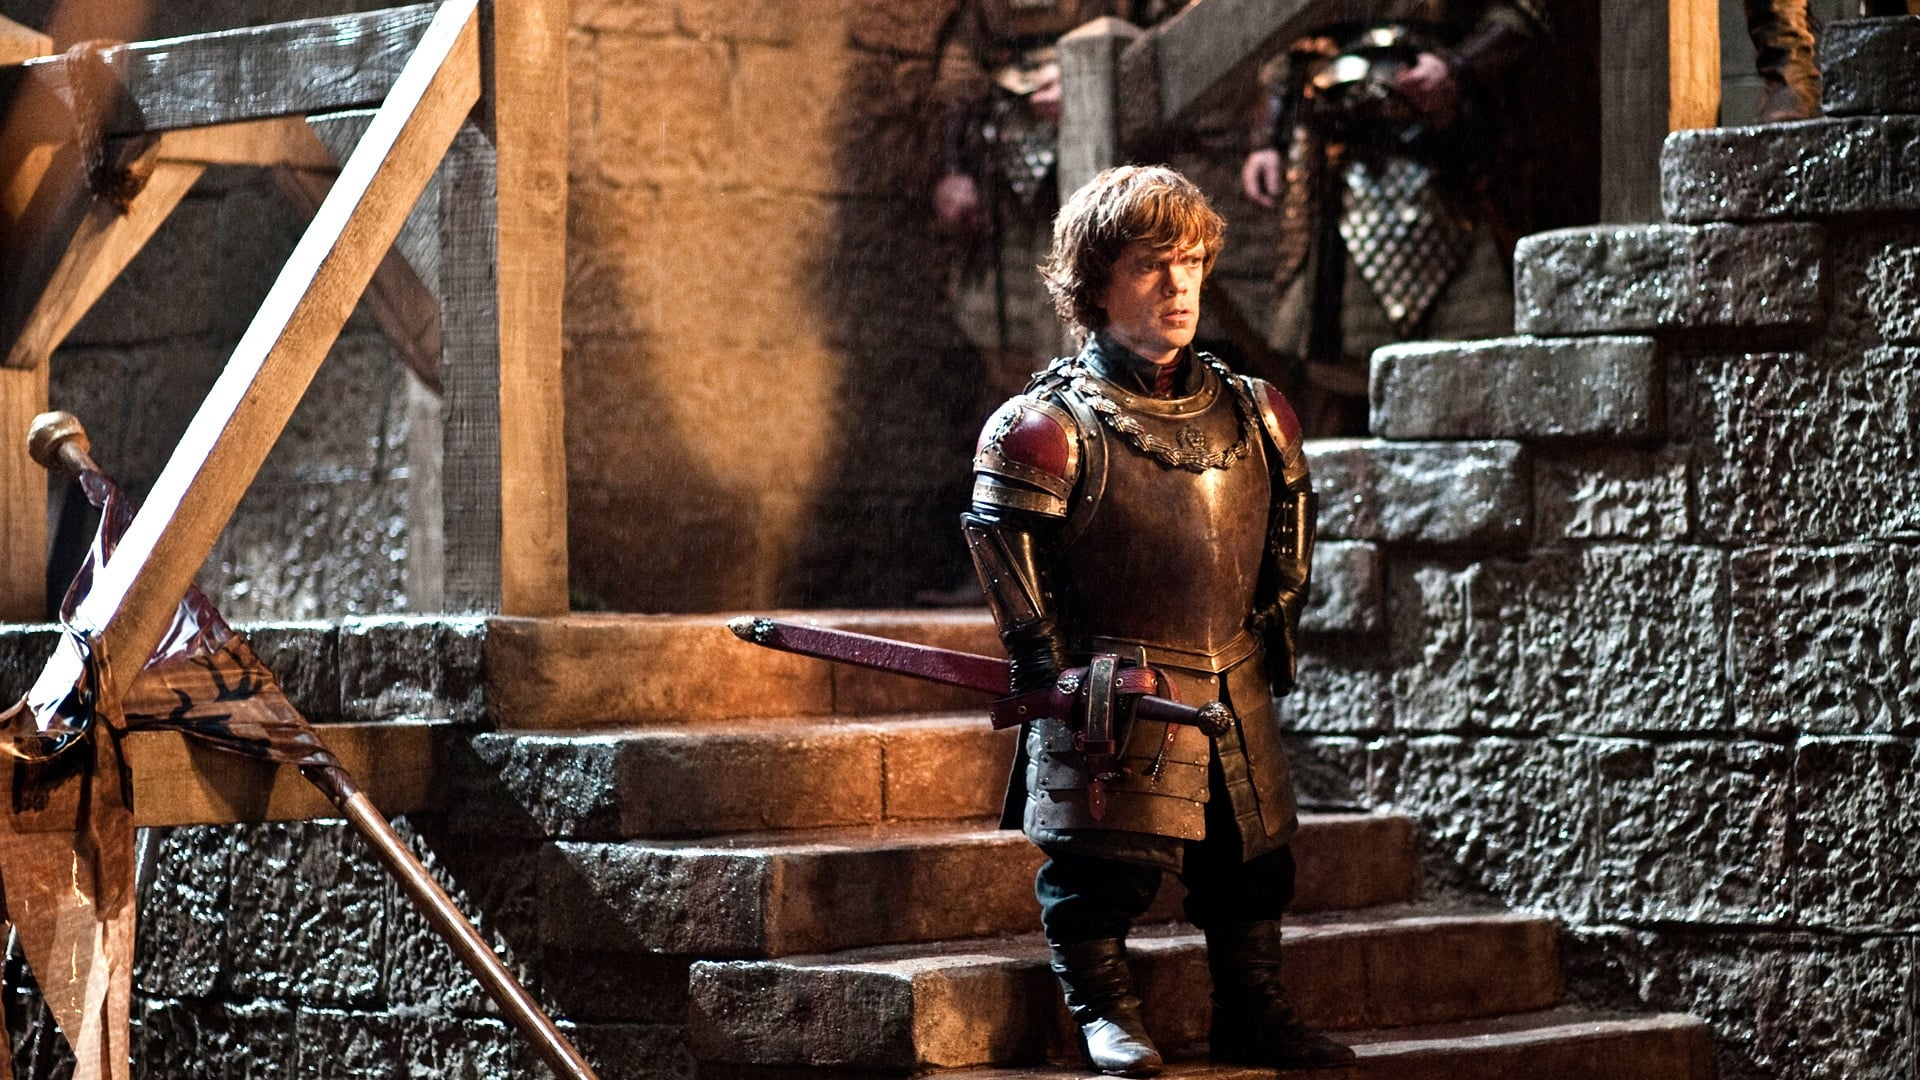 watch game of thrones season 2 episode 9 free streaming